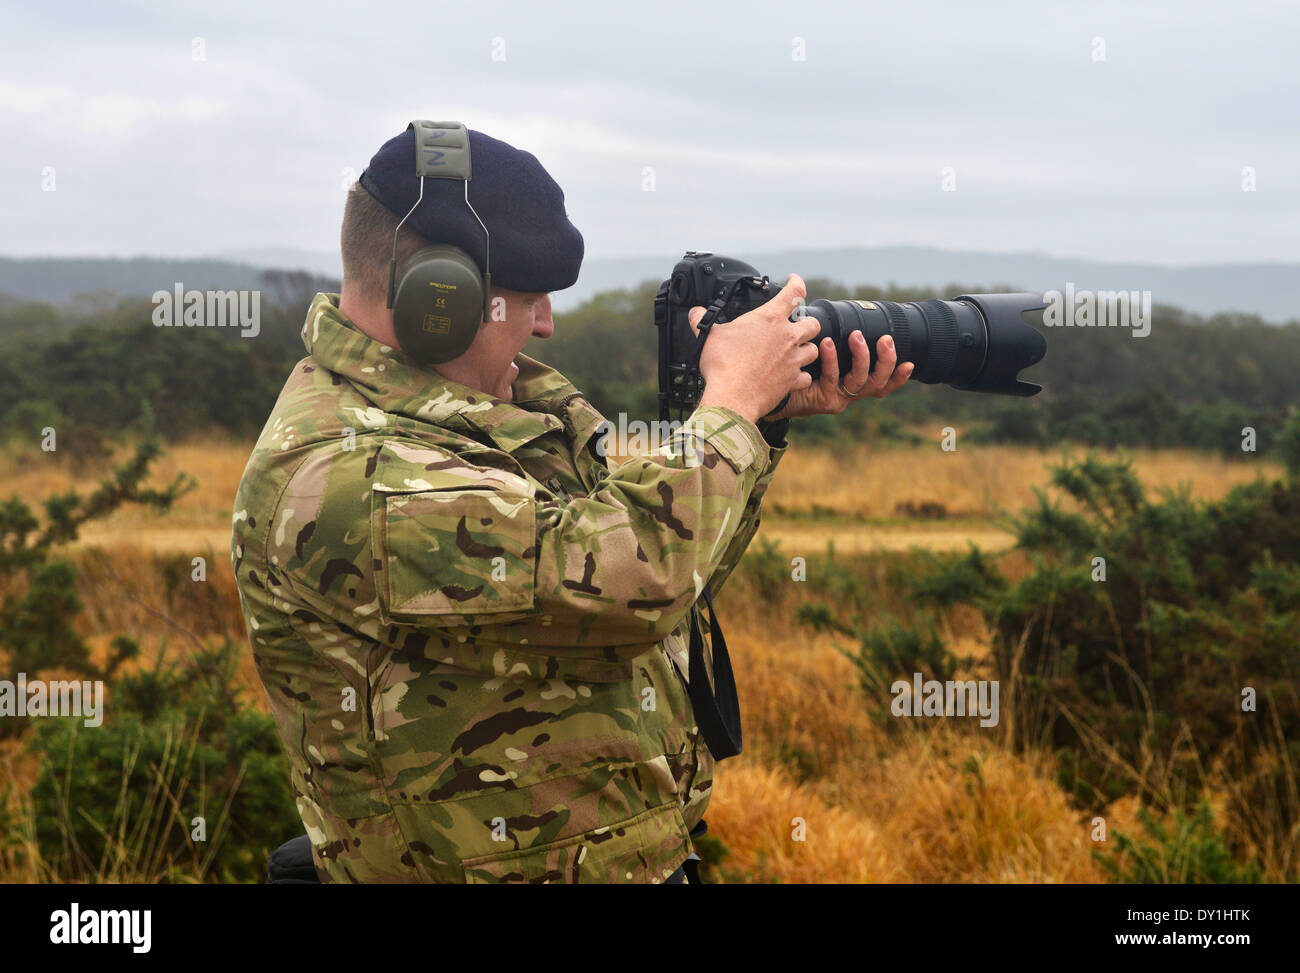 Soldier filming video with a DSLR camera, UK - Stock Image